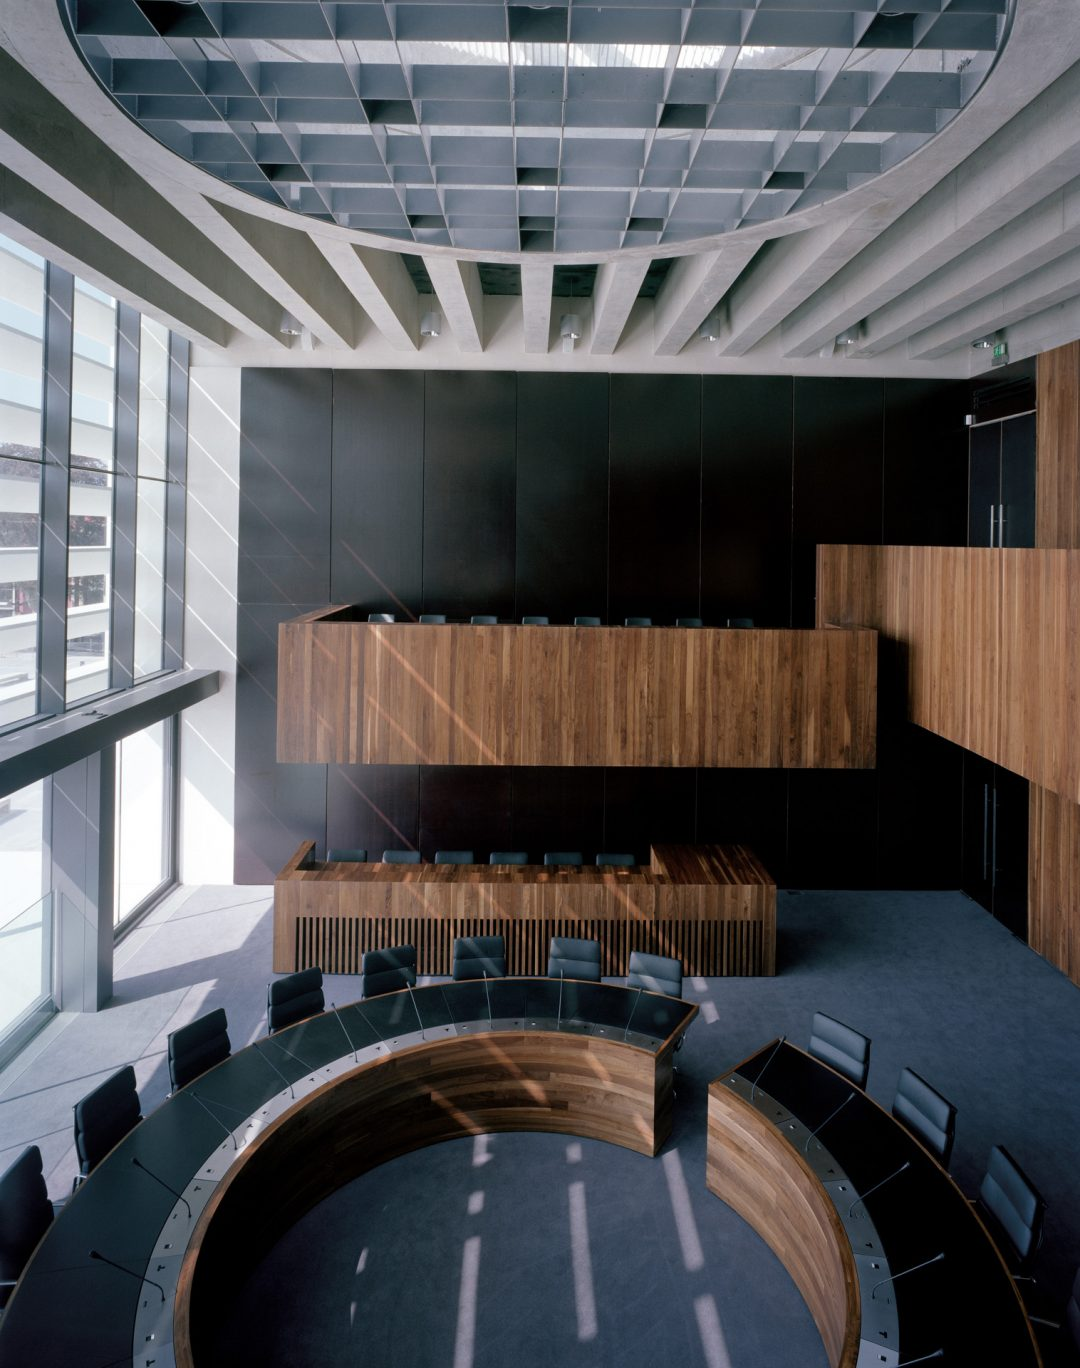 Council chamber and bespoke furniture at Athlone Civic Centre